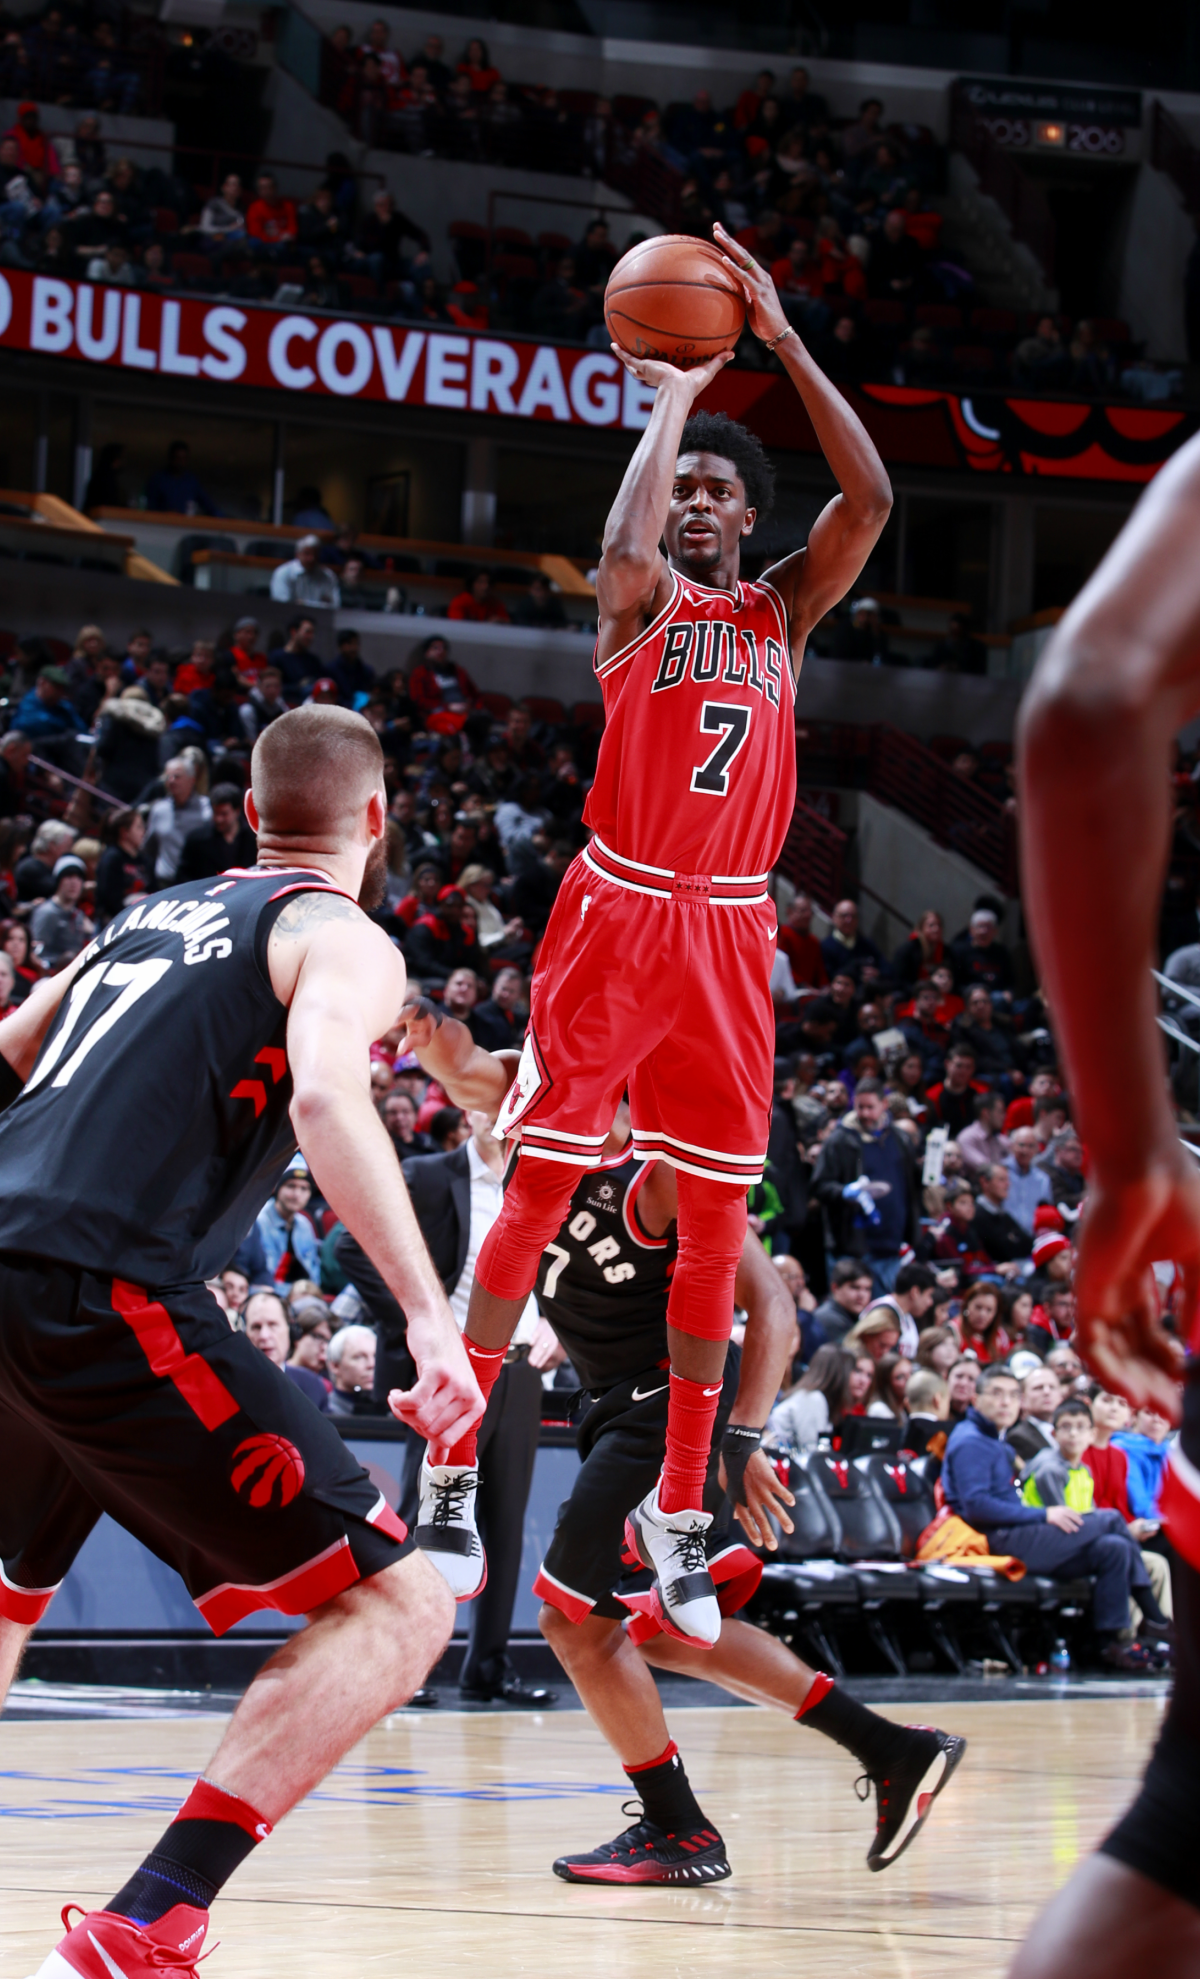 Justin Holiday #7 of the Chicago Bulls shoots the ball during the game against the Toronto Raptors on January 3, 2018 at the United Center in Chicago, Illinois.